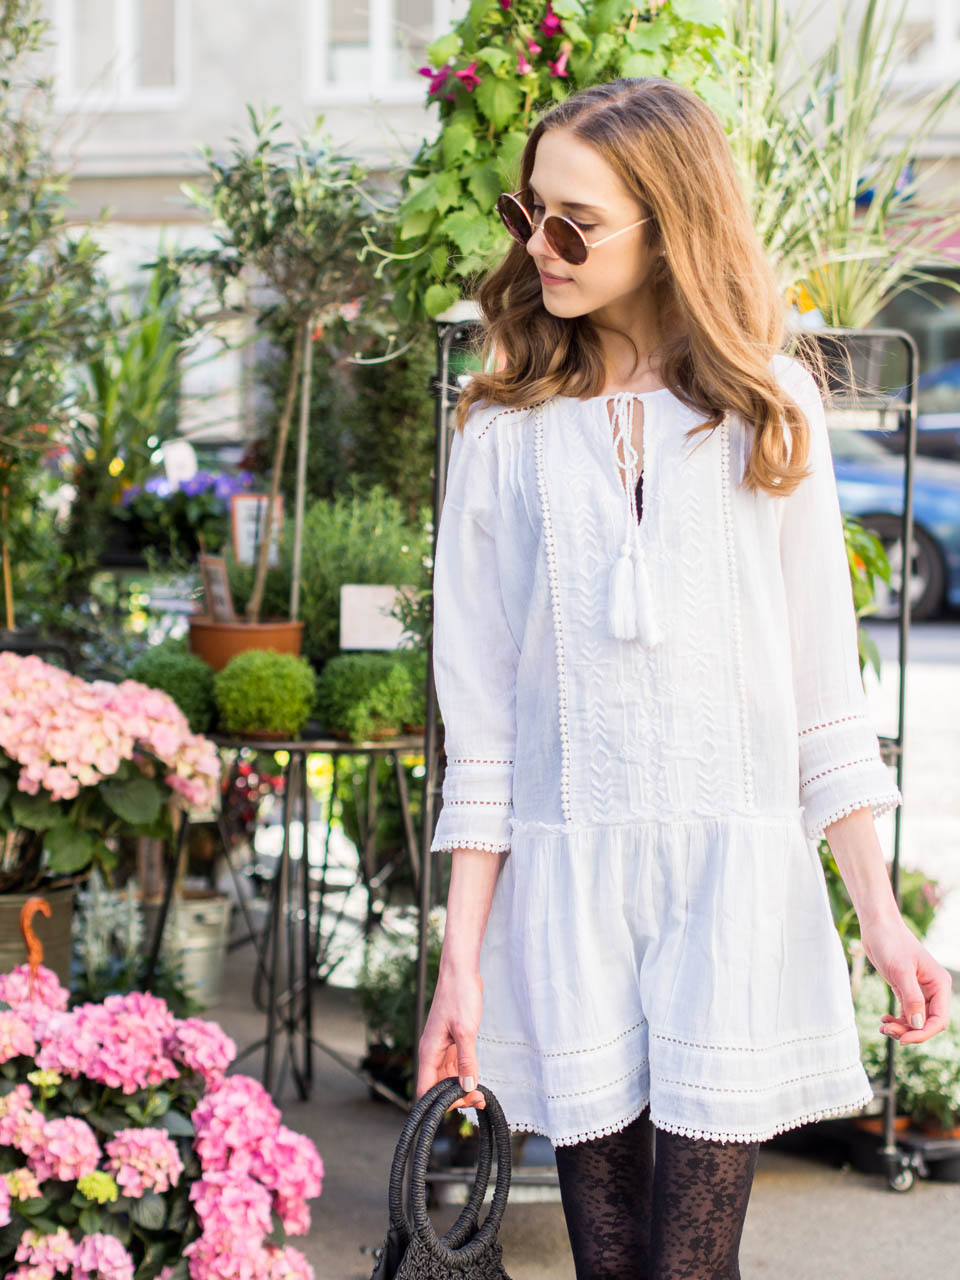 fashion-blogger-summer-outfit-inspiration-layers-white-dress-denim-jacket